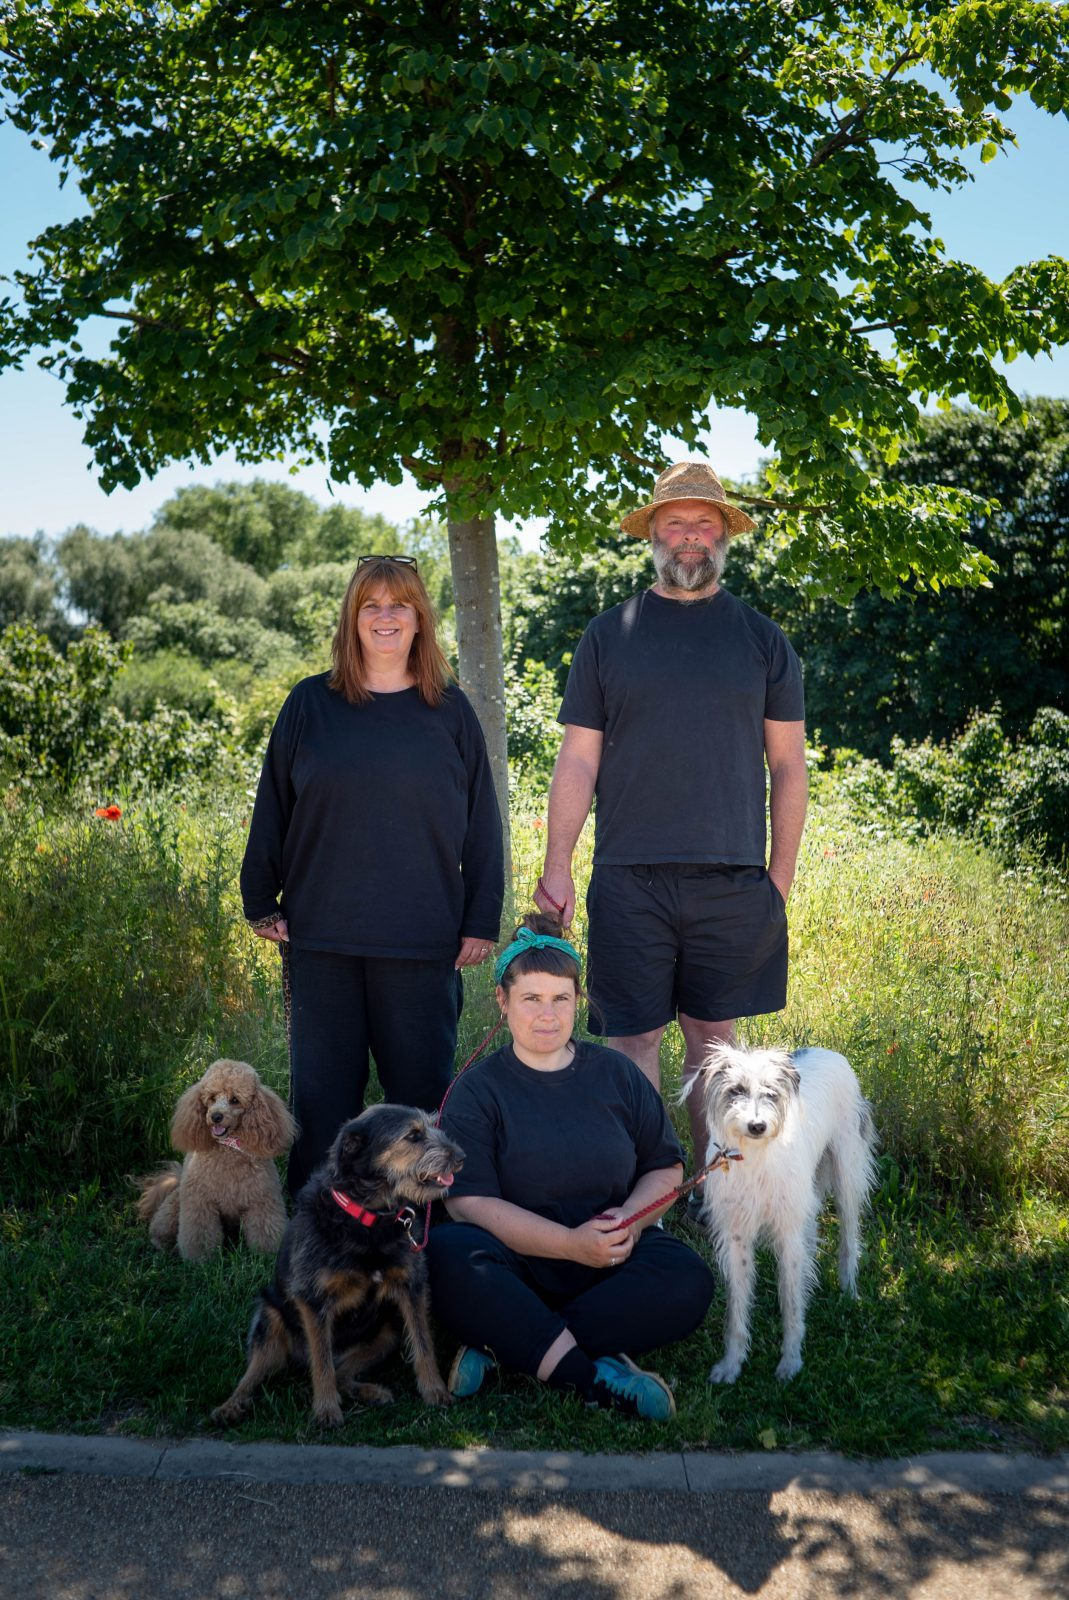 Three people under a tree with three dogs